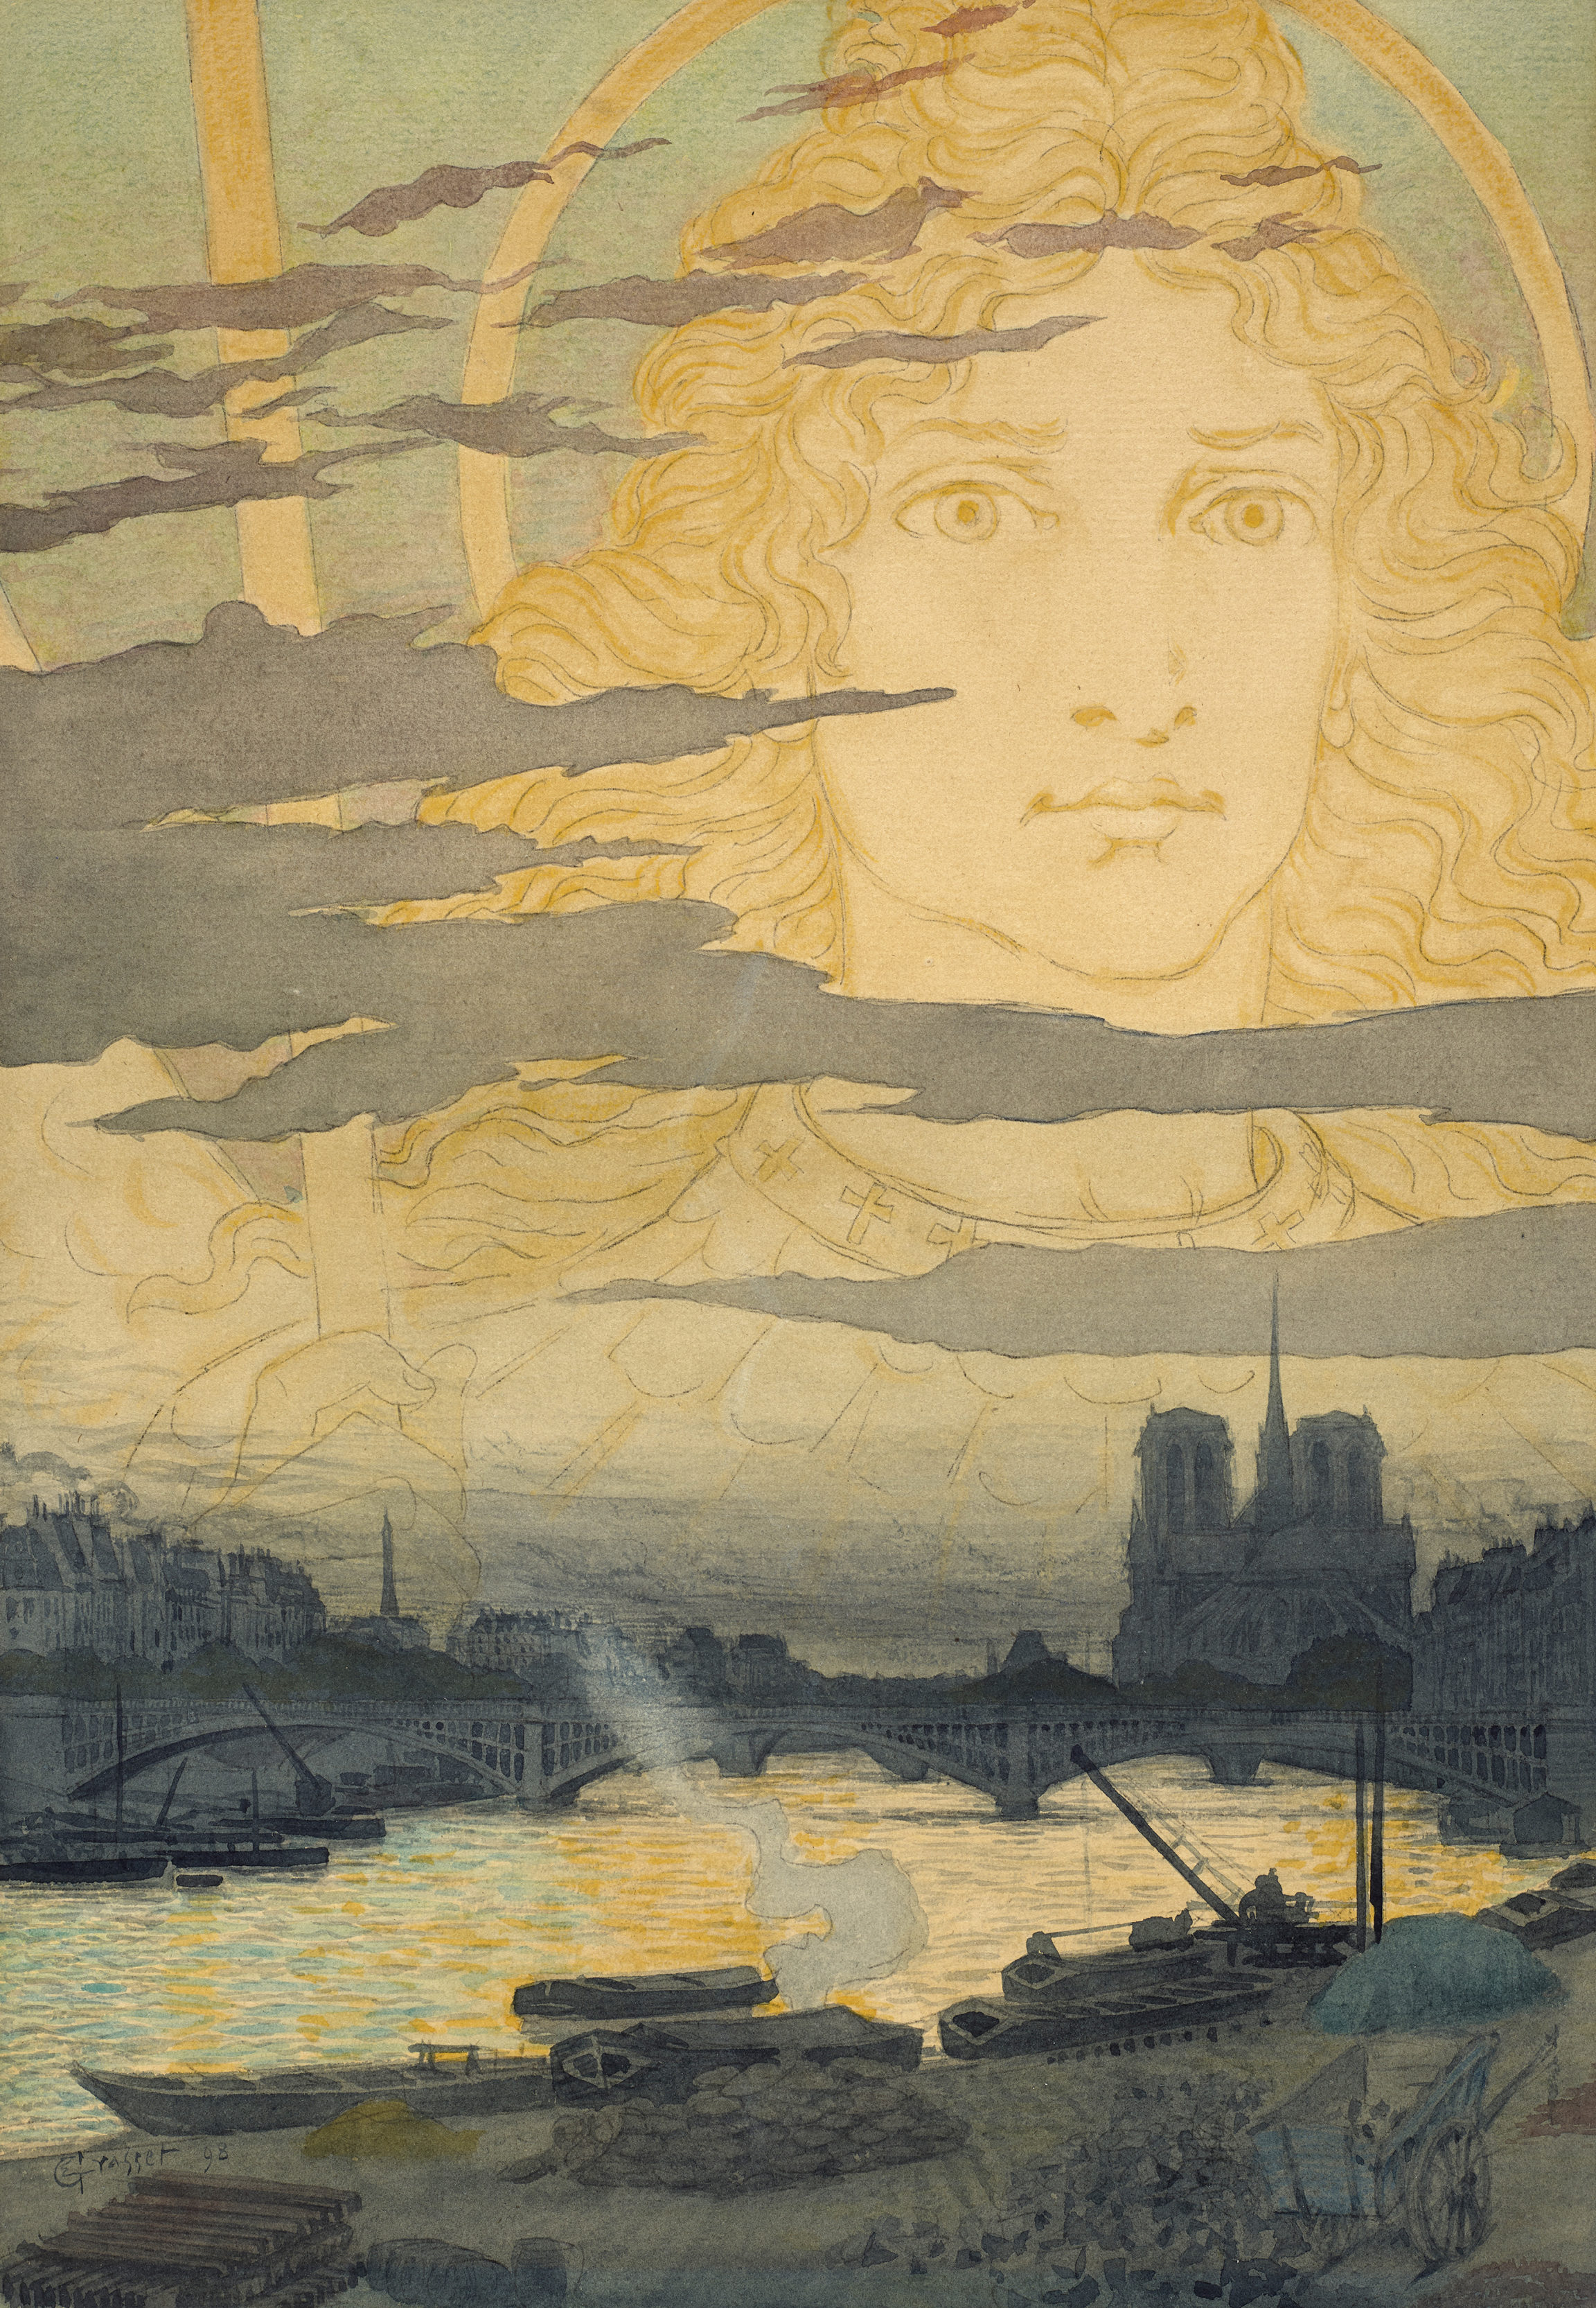 Eugène Grasset, Apparition d'un visage nimbé dans le ciel au-dessus de Paris (Appearance of a Haloed Face in the Sky over Paris), 1898